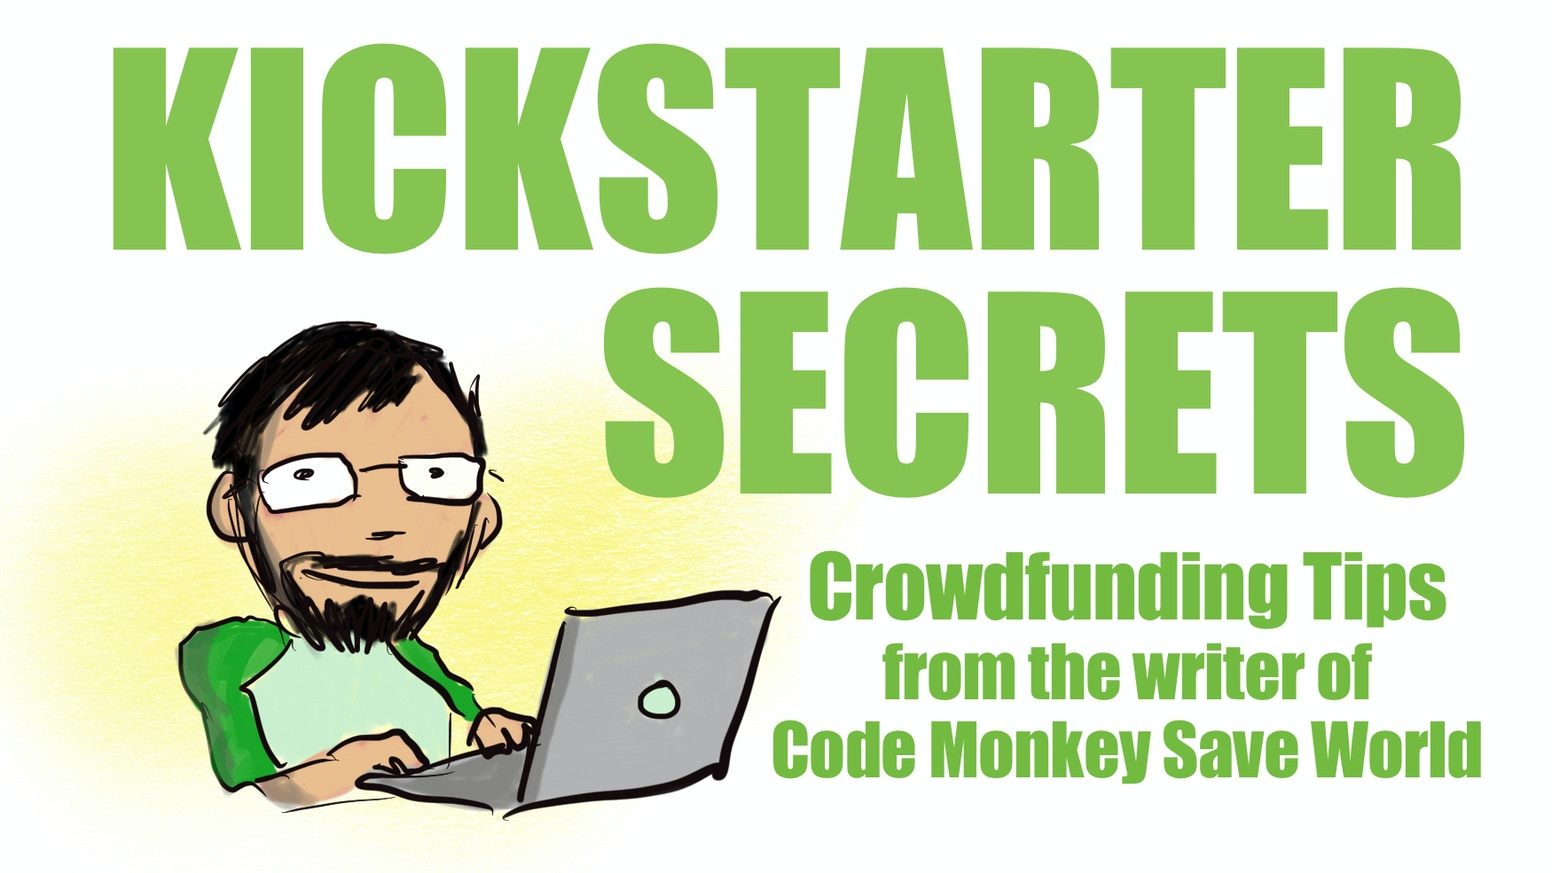 A book of practical crowdfunding tips from the writer of Code Monkey Save World and The Princess Who Saved Herself